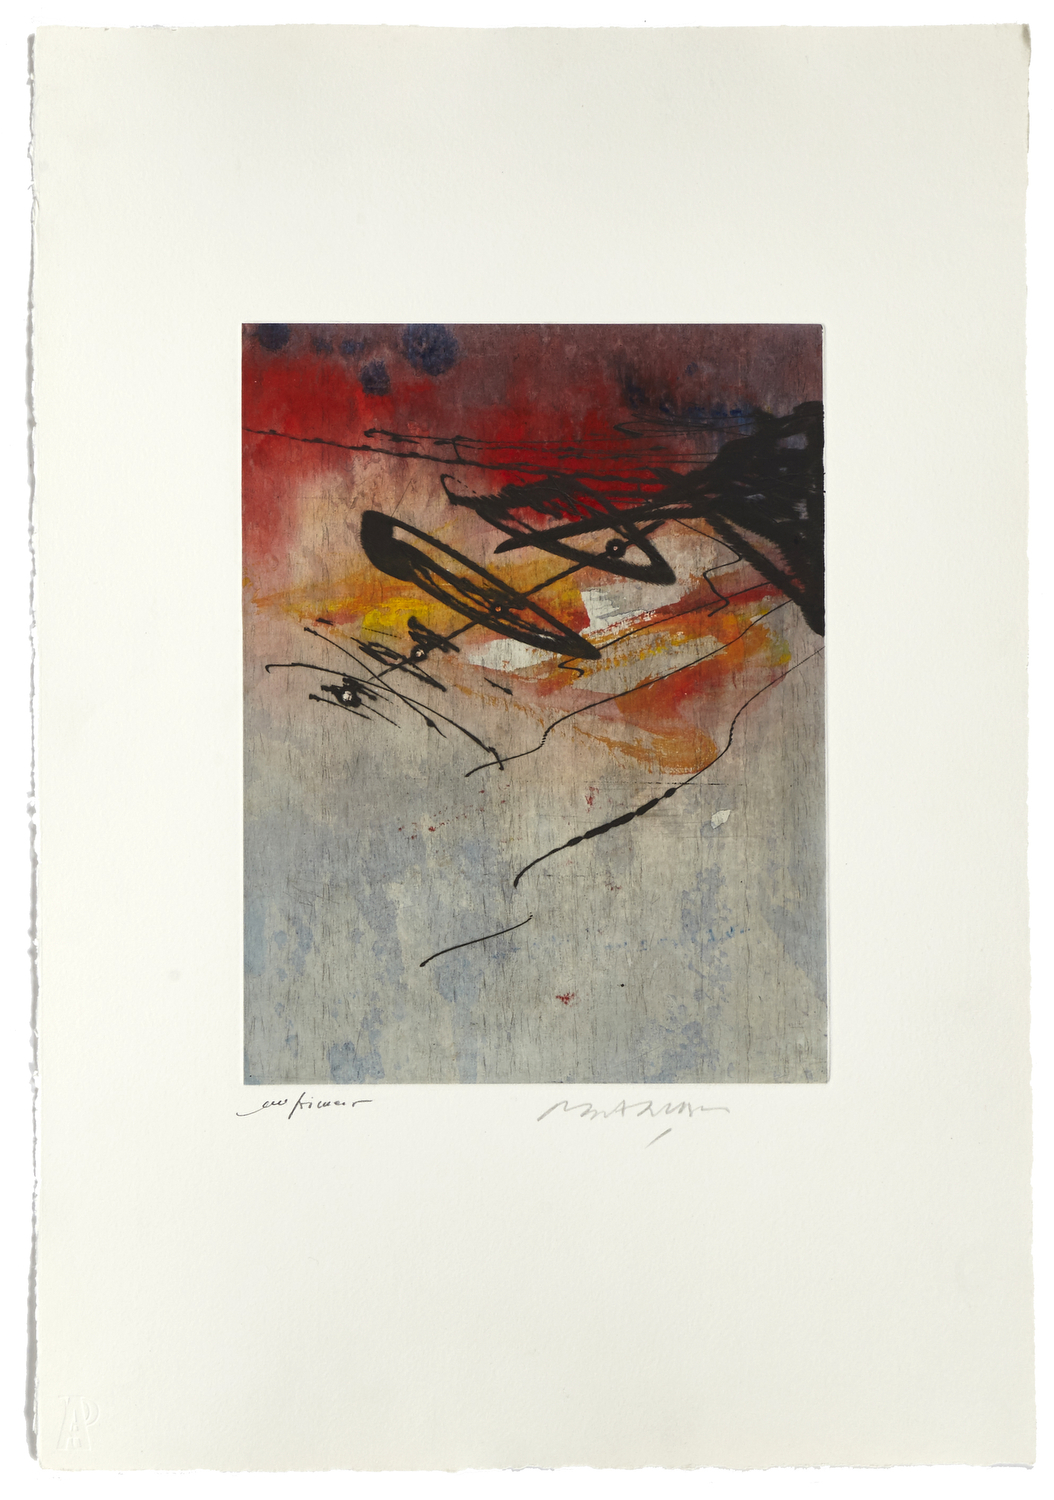 Untitled 1    2000 | 56 x 38 cm | Etching and painted chine | 17 prints | Éditor Atelier-Galerie A. Piroir